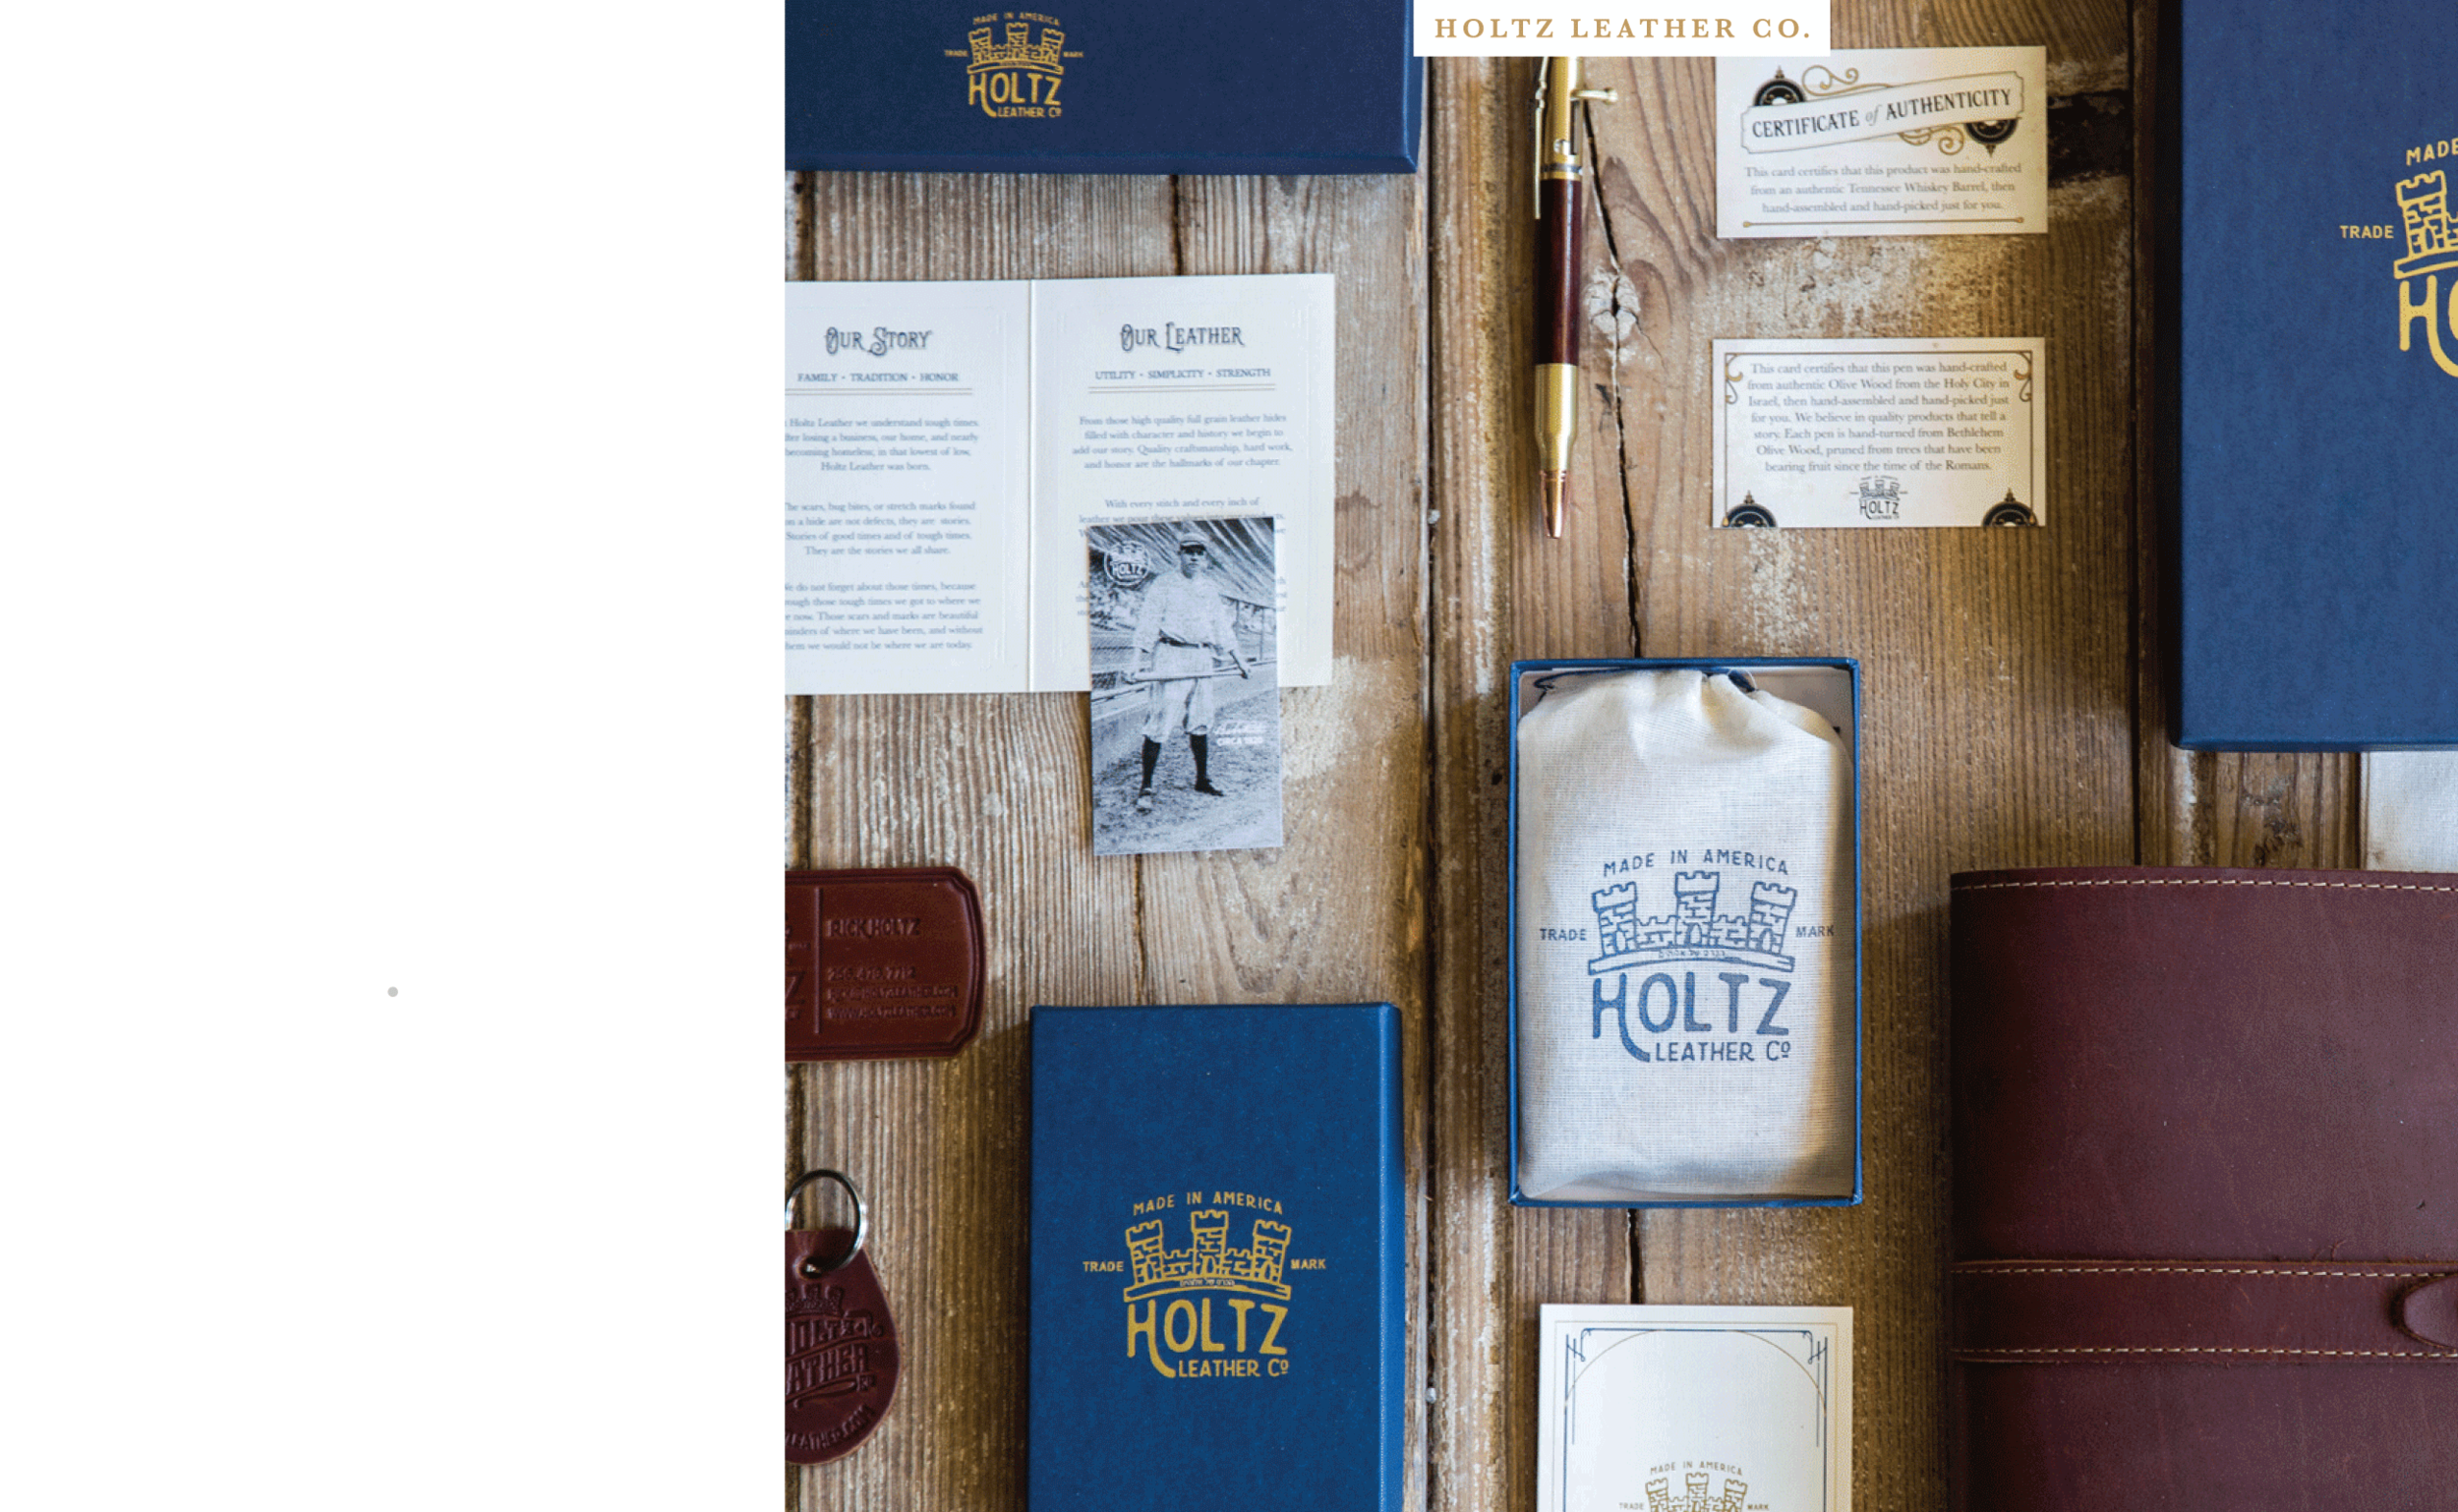 HoltzBranding-AboutUs-HoltzLeather-Transparent-05.png